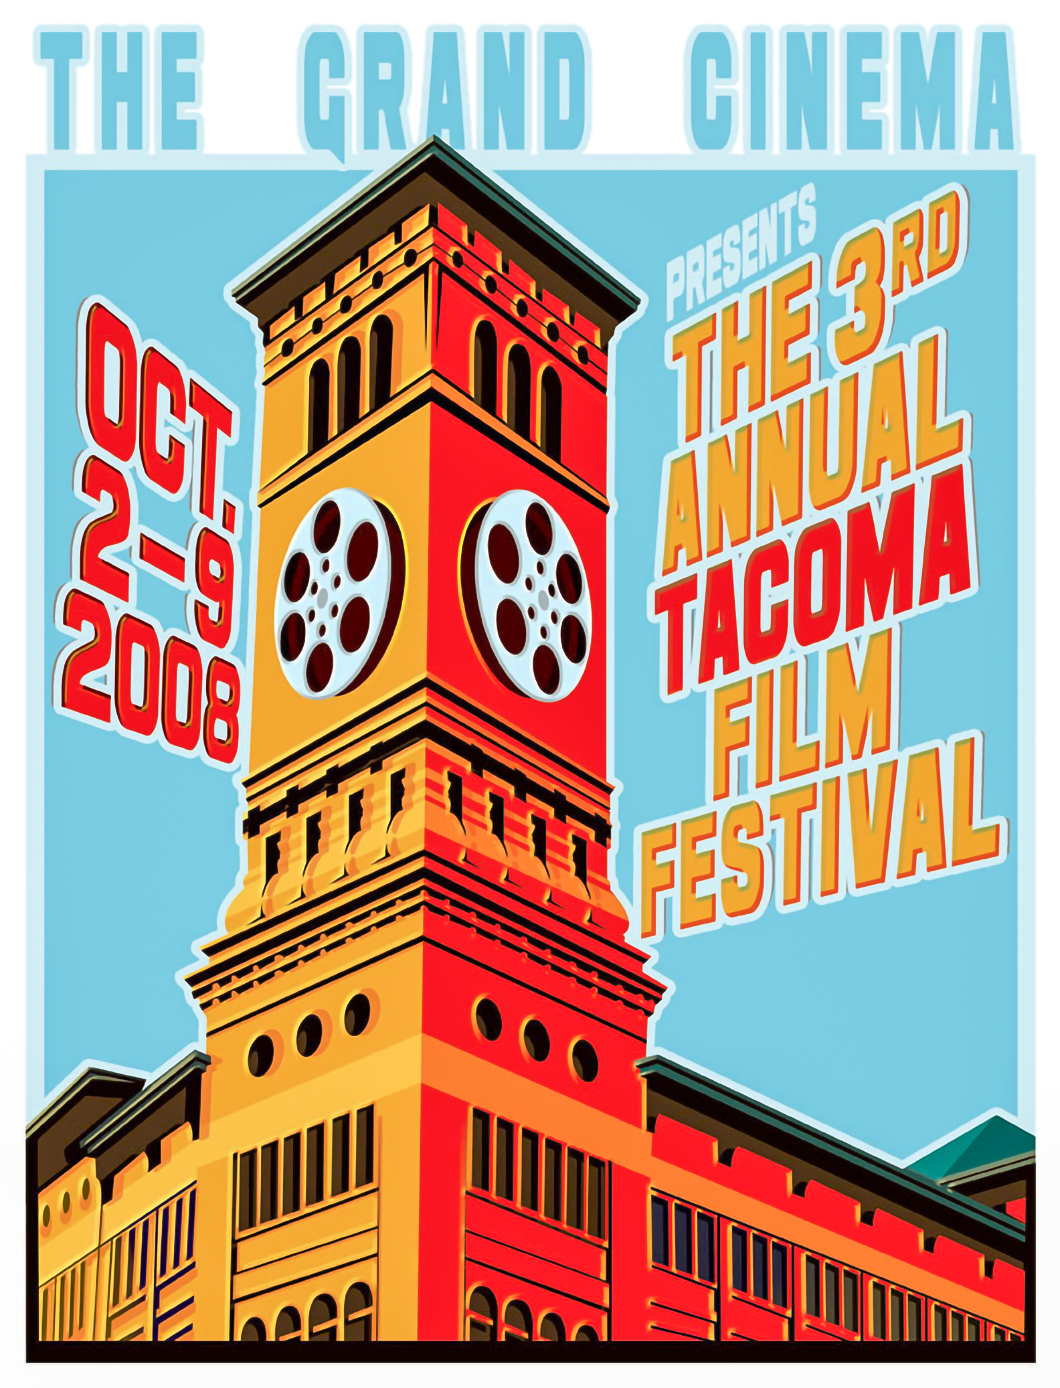 Film Festival Posters 16